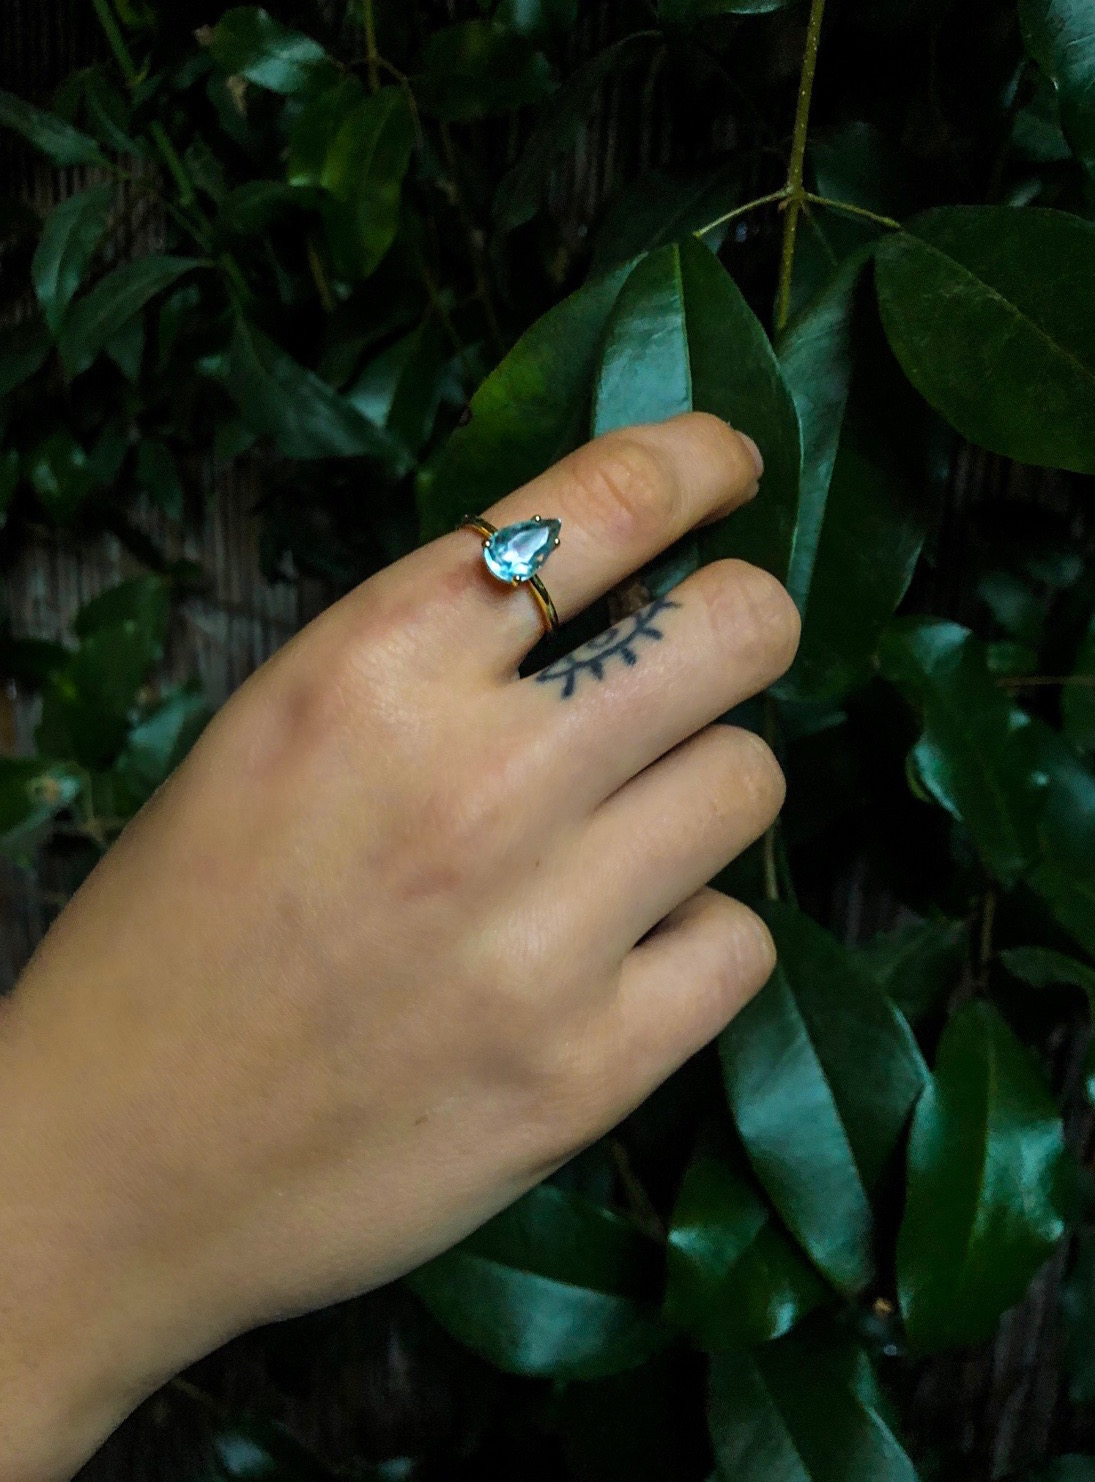 BABY BLUE 1.4 ct aquamarine in 18K gold prong setting Source: Madagascar Cut: Thailand Made: Los Angeles $950